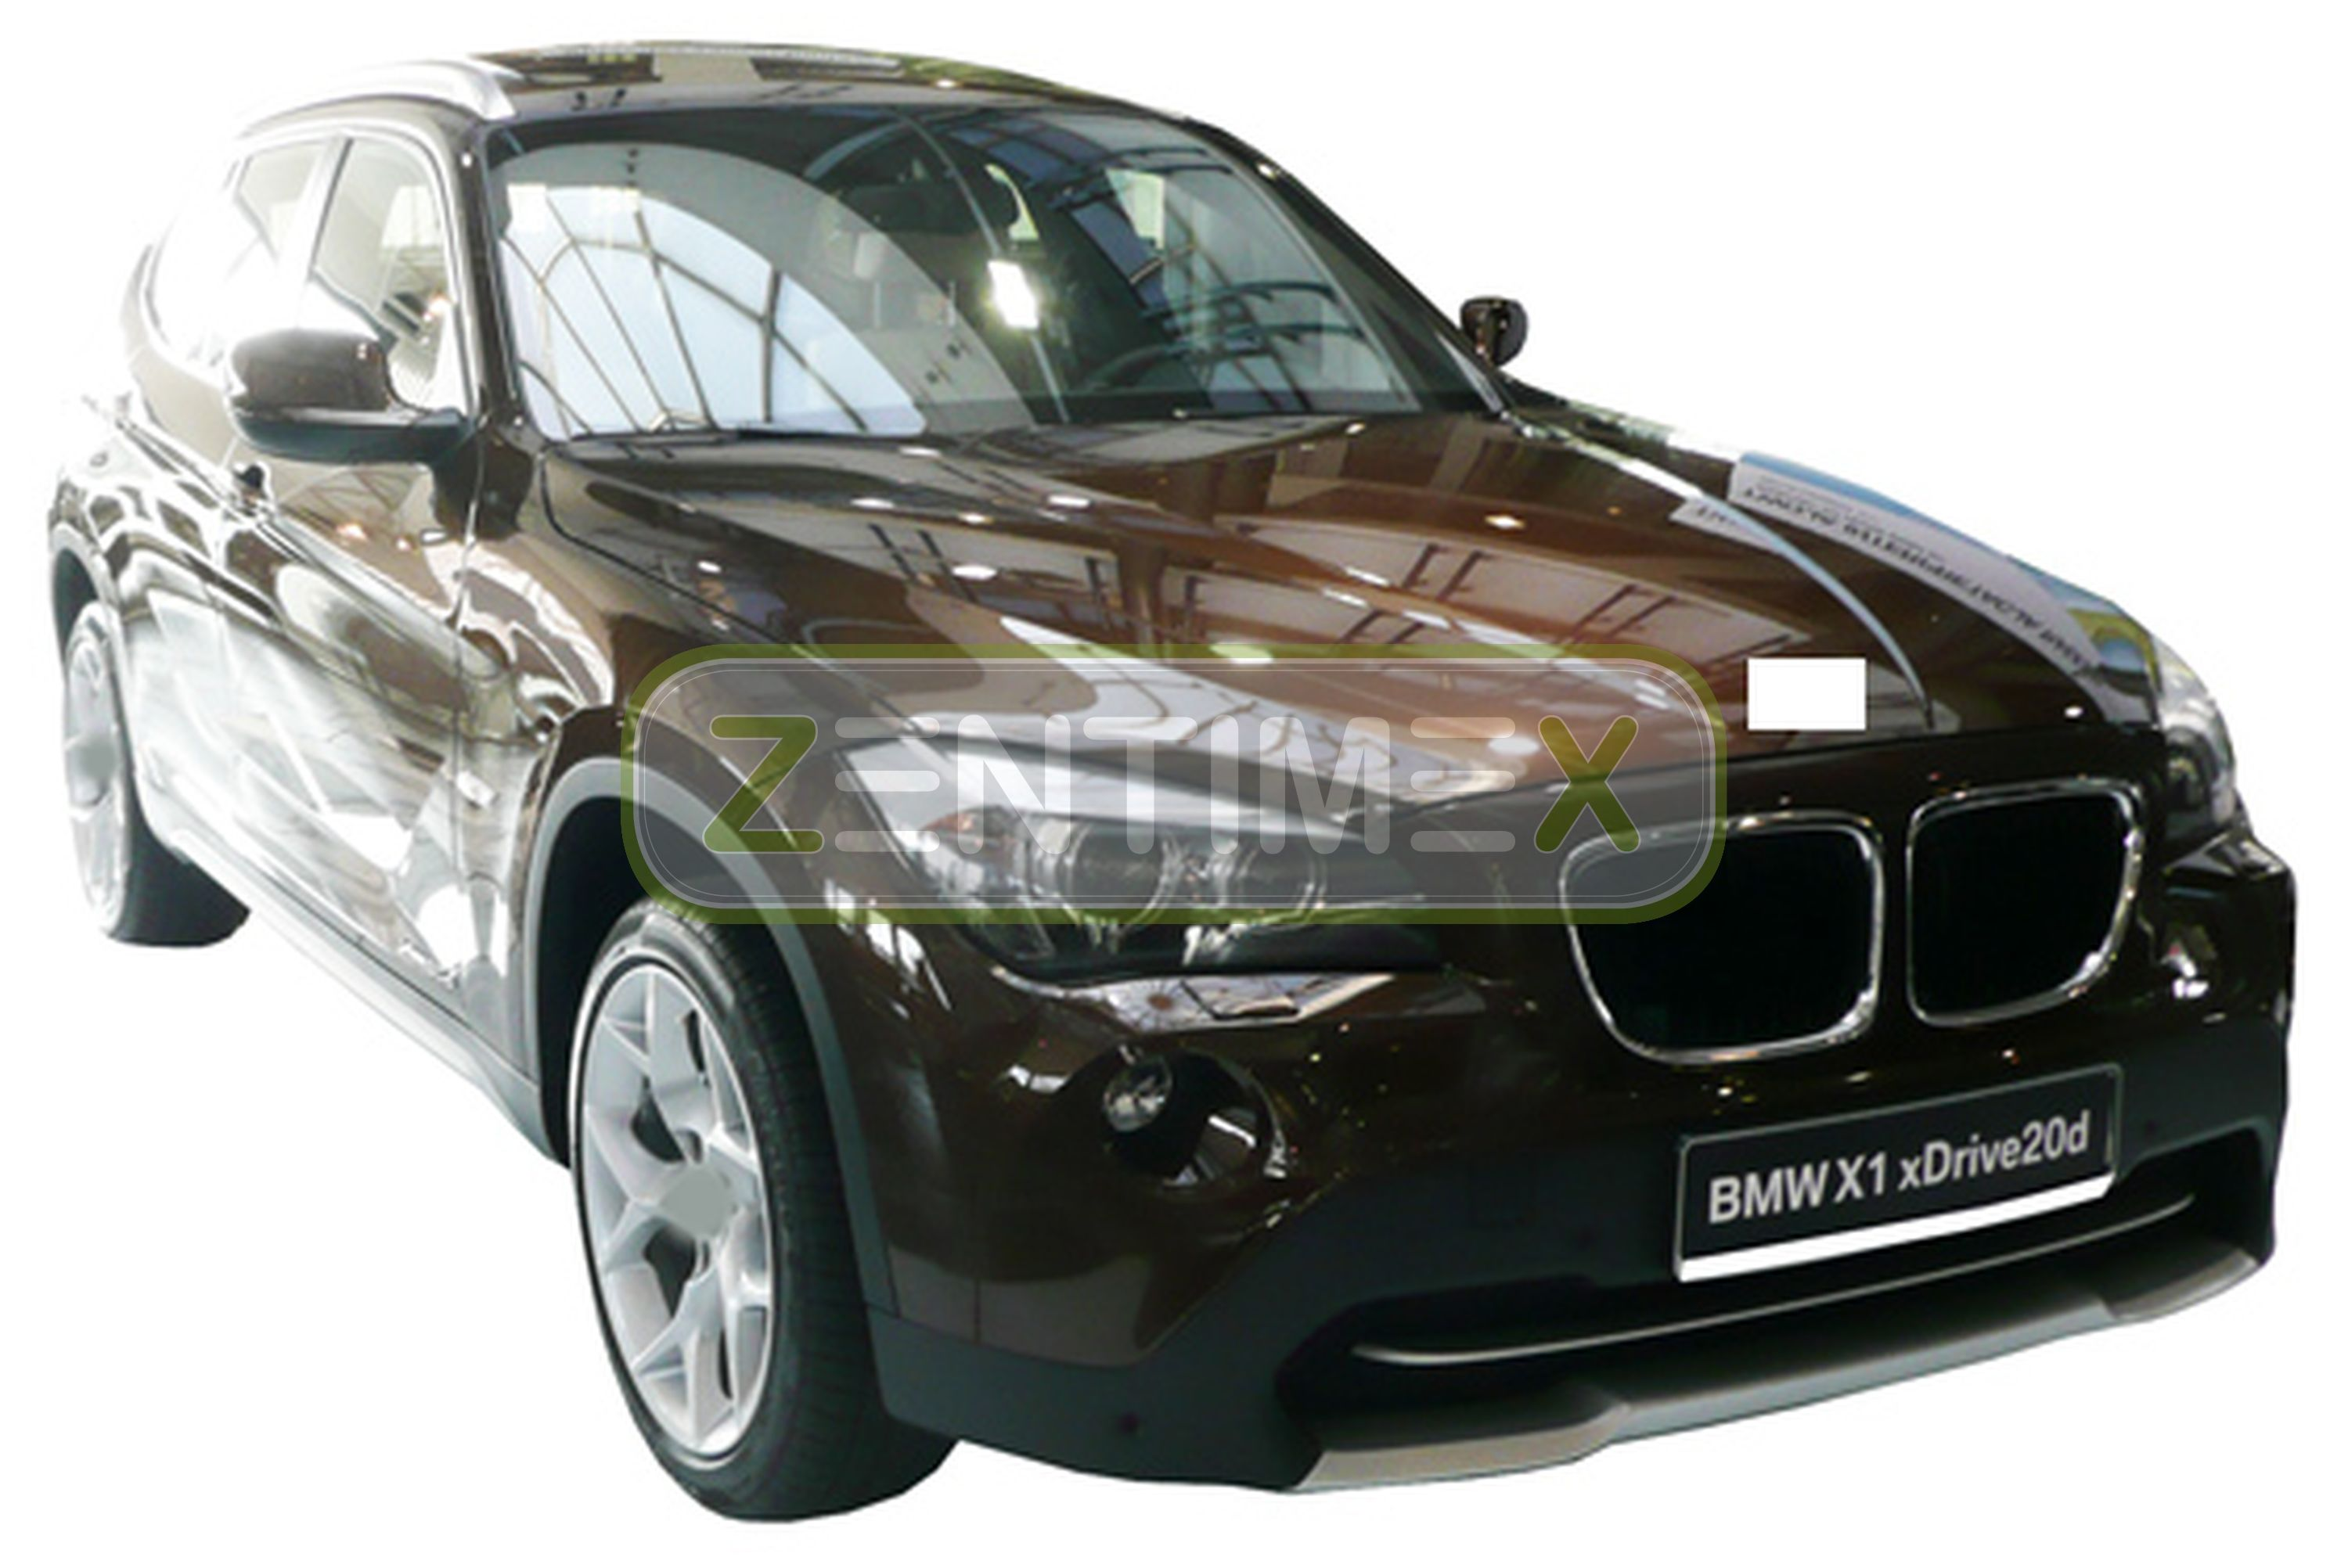 geriffelte kofferraumwanne f r bmw x1 e84 facelift. Black Bedroom Furniture Sets. Home Design Ideas